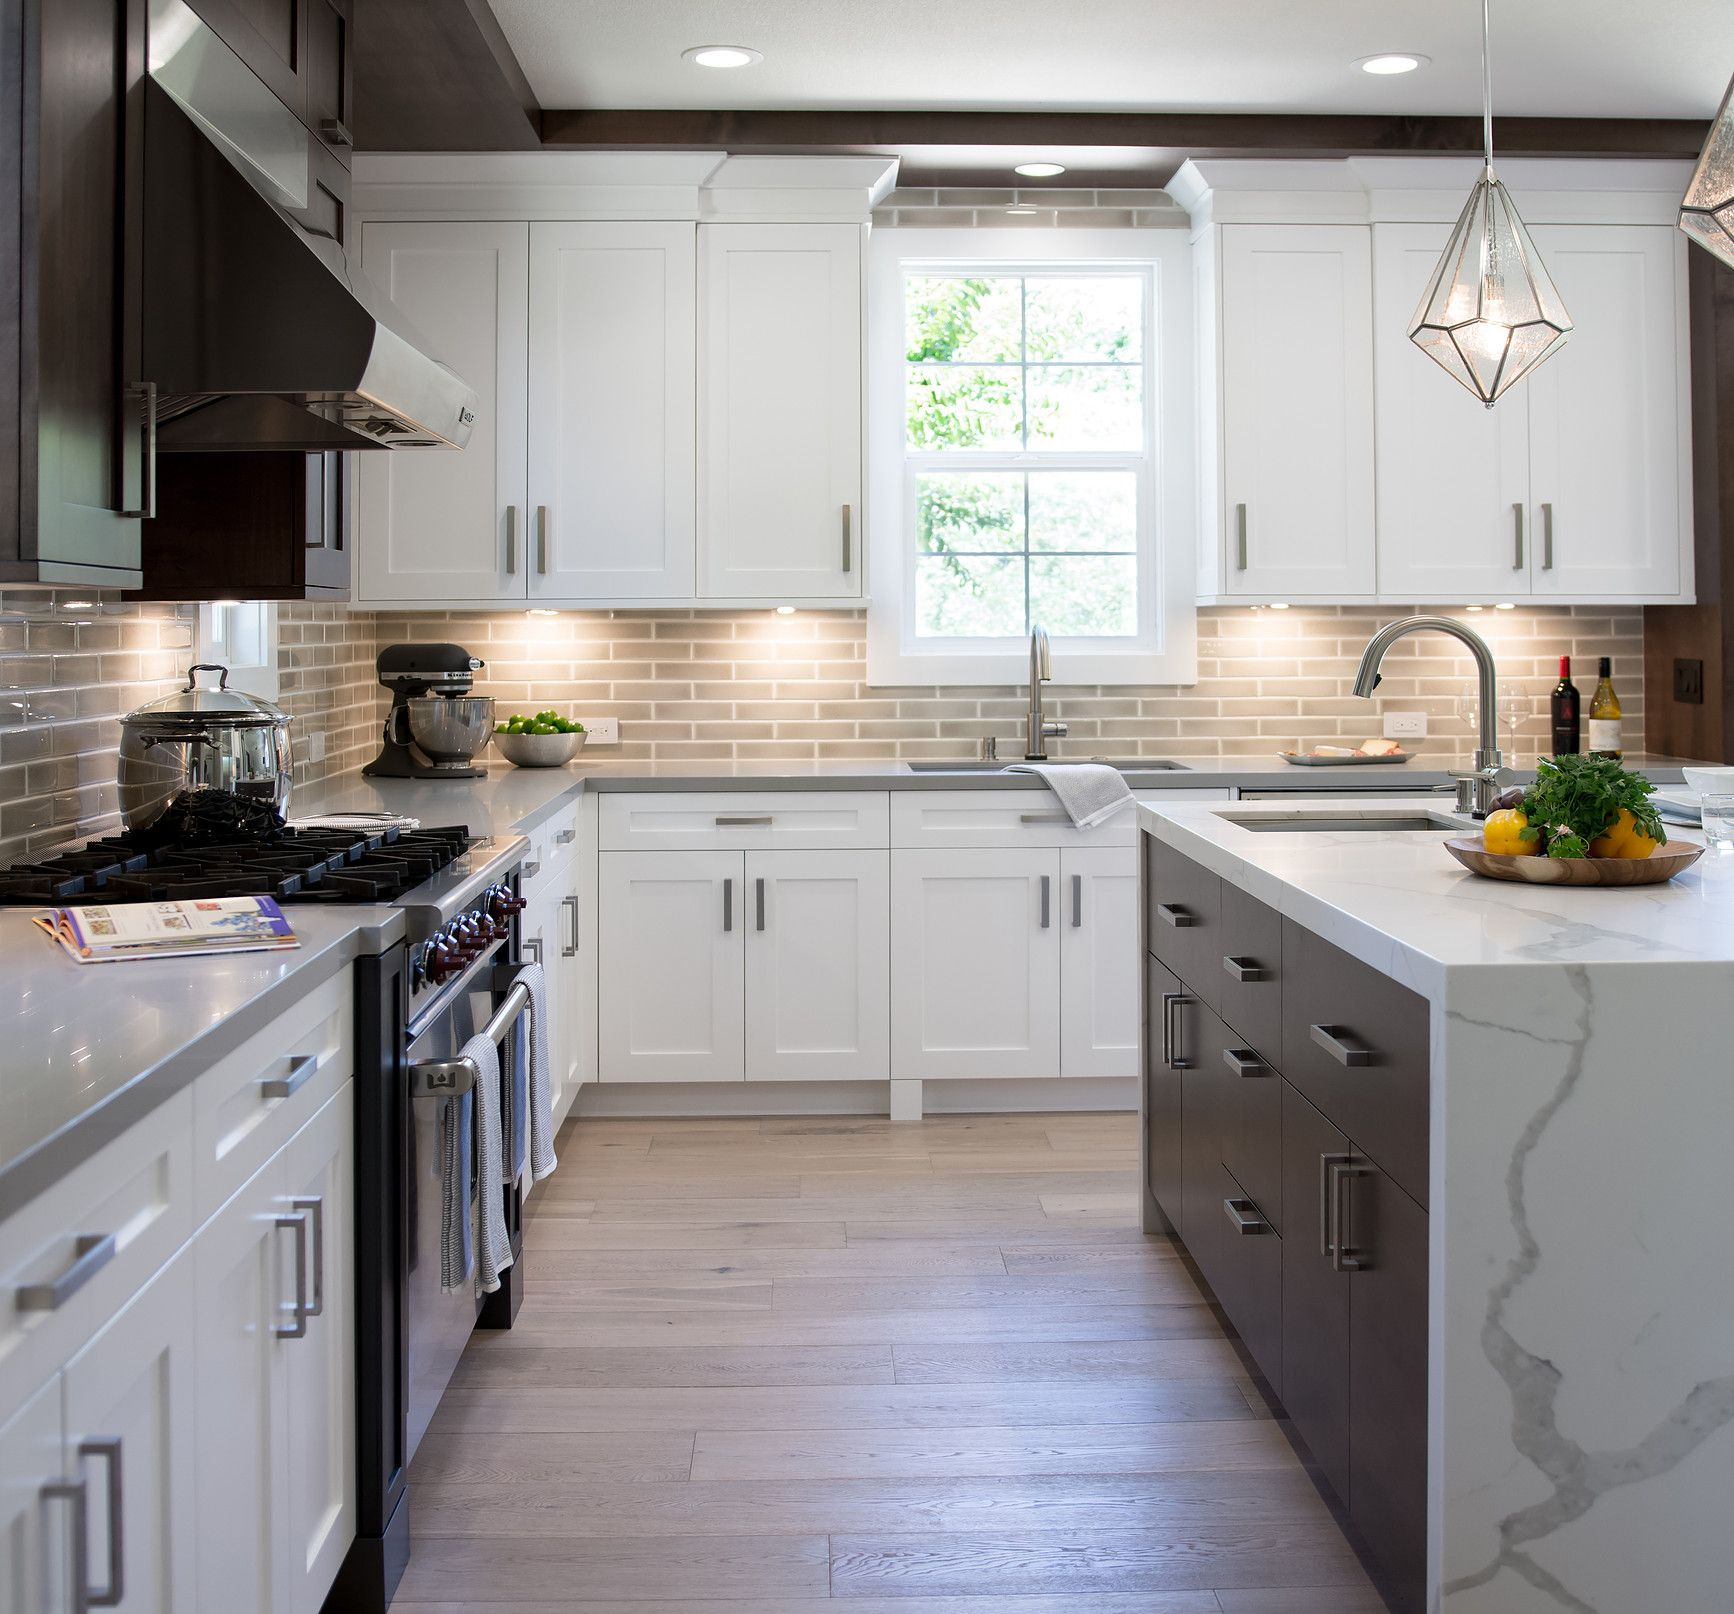 White Shaker Cabinets Mixed With Modern Flat Panel Dark Wood